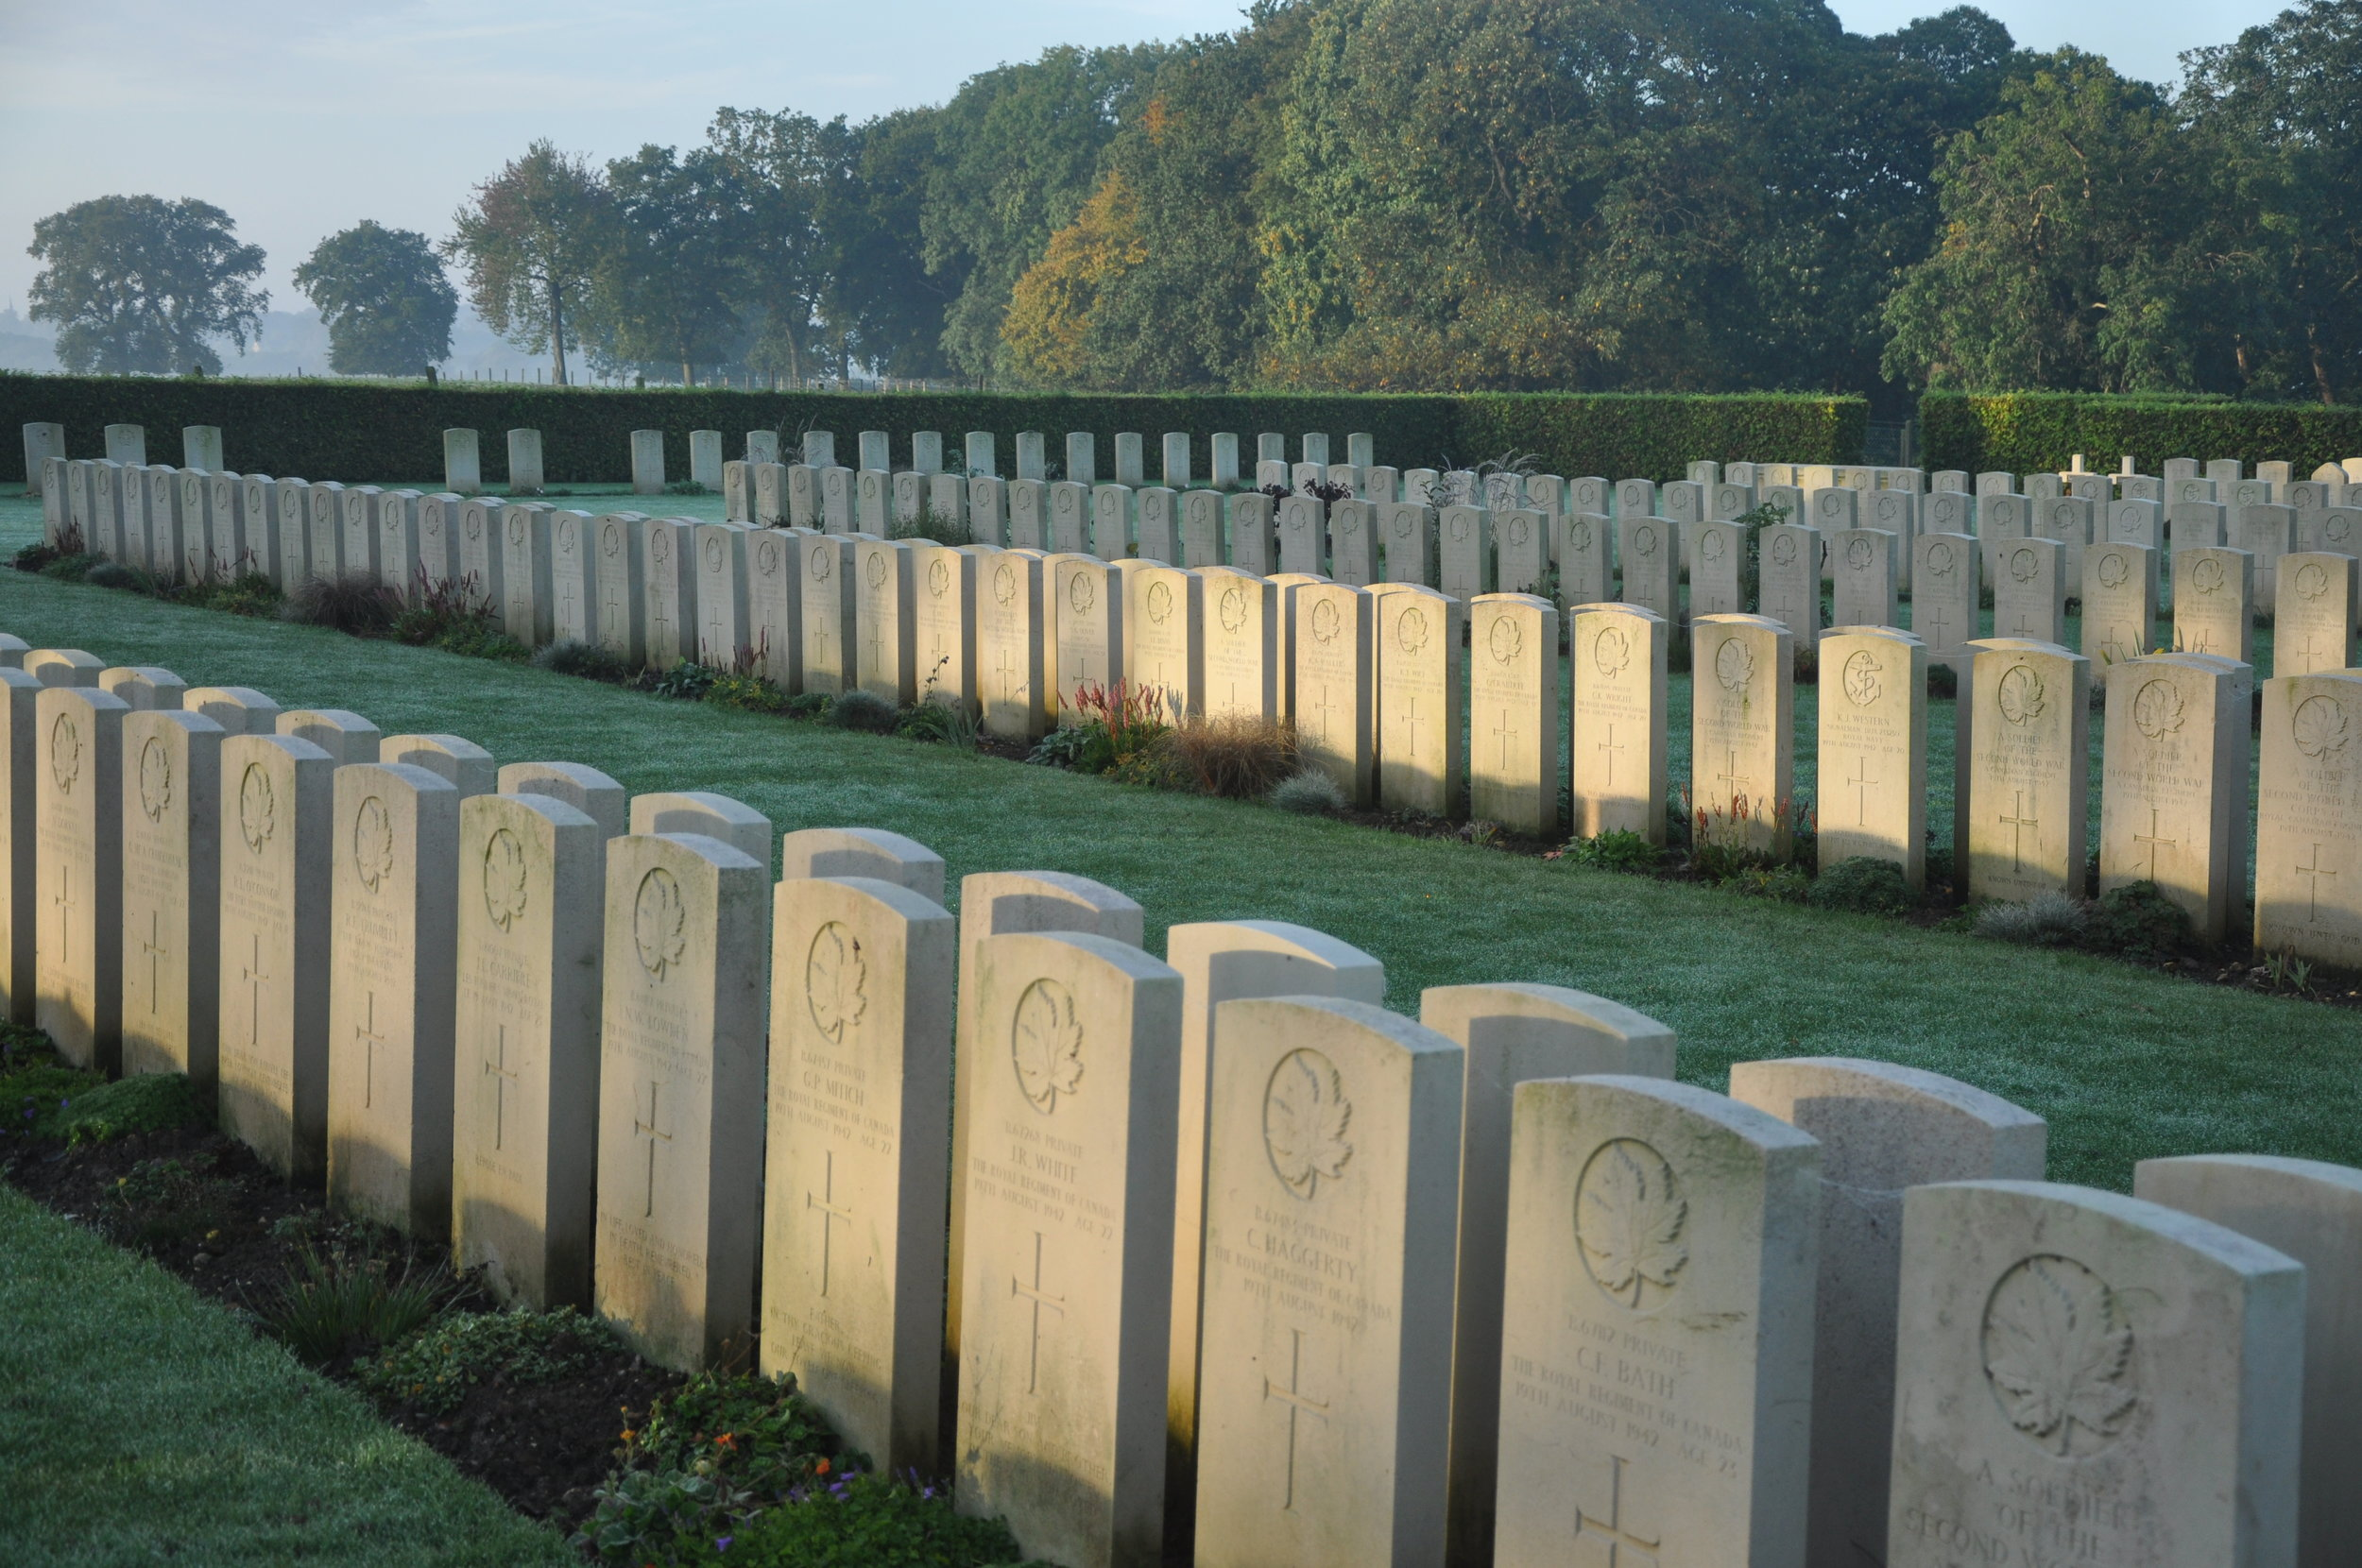 Canadian soldiers buried in France